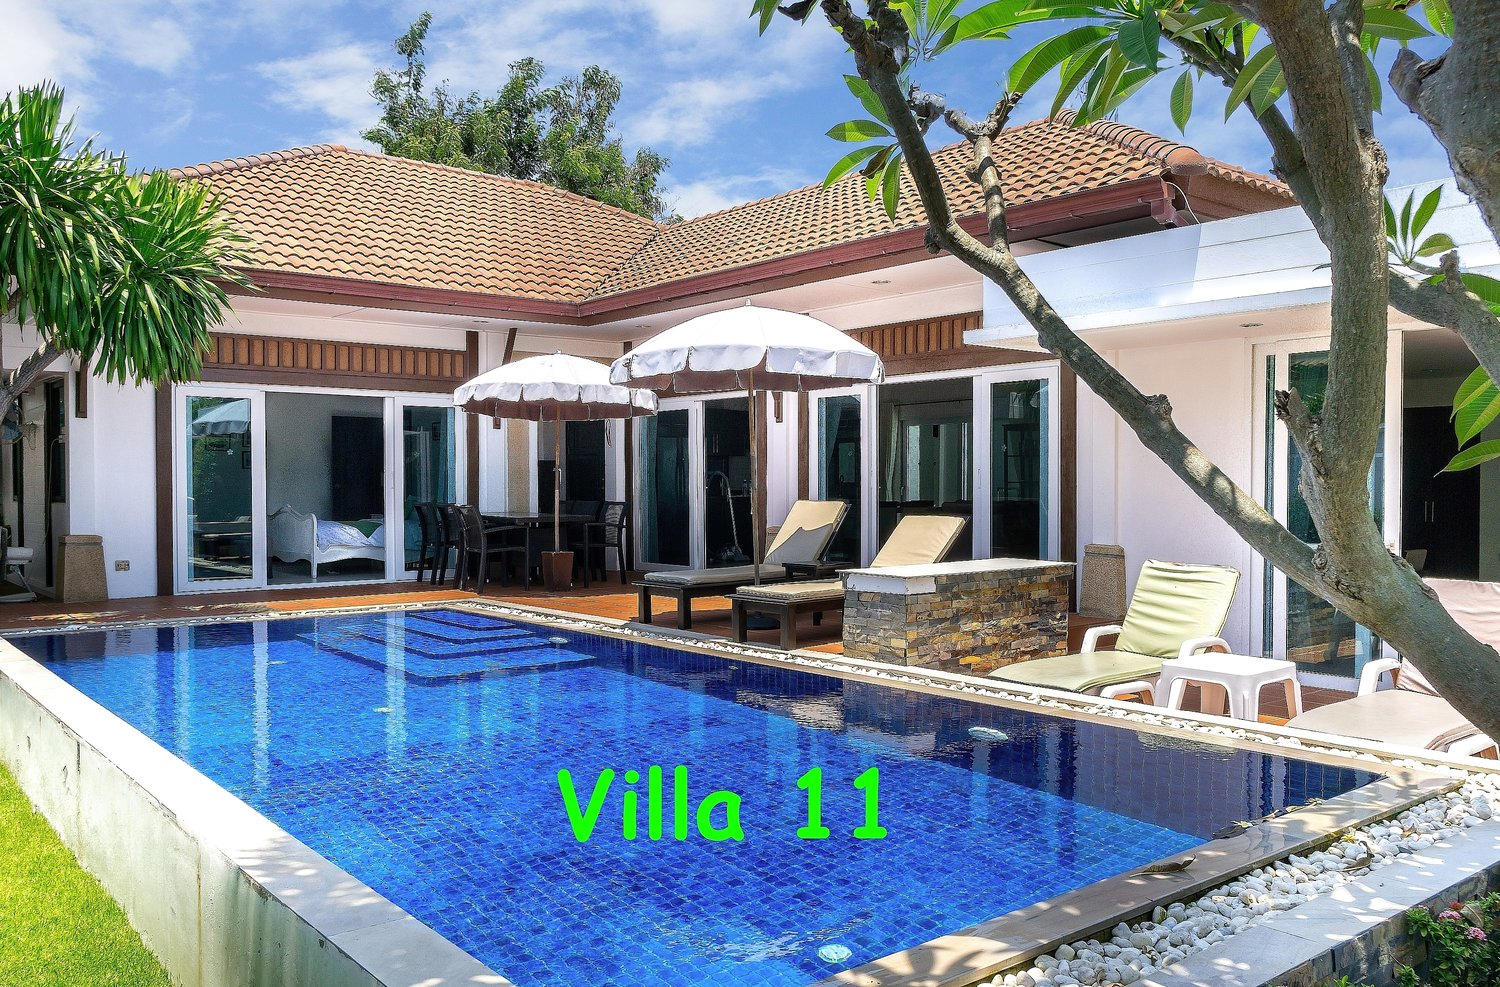 Basuba Pool Villas, no. 11, 4 bedrooms